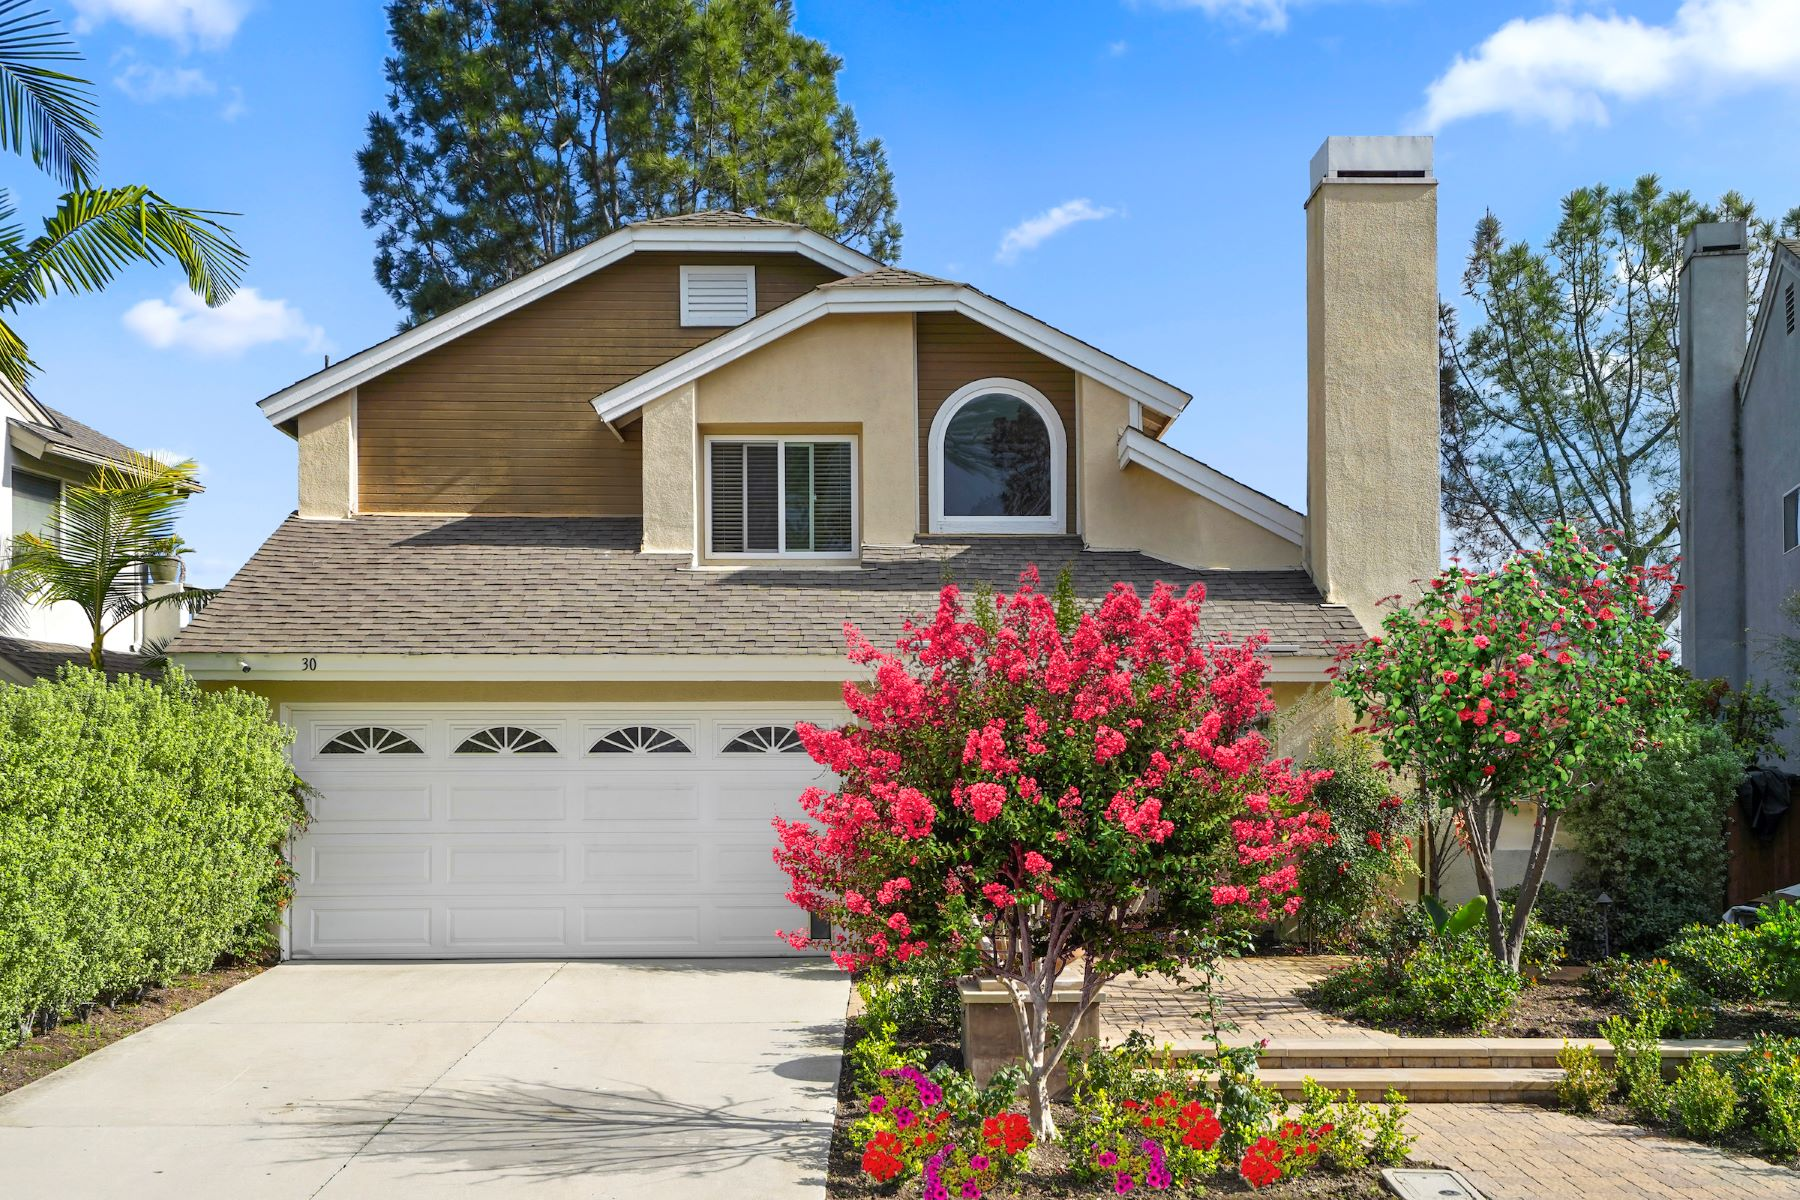 Single Family Homes for Active at 30 Spicewood, Aliso Viejo 30 Spicewood Aliso Viejo, California 92656 United States